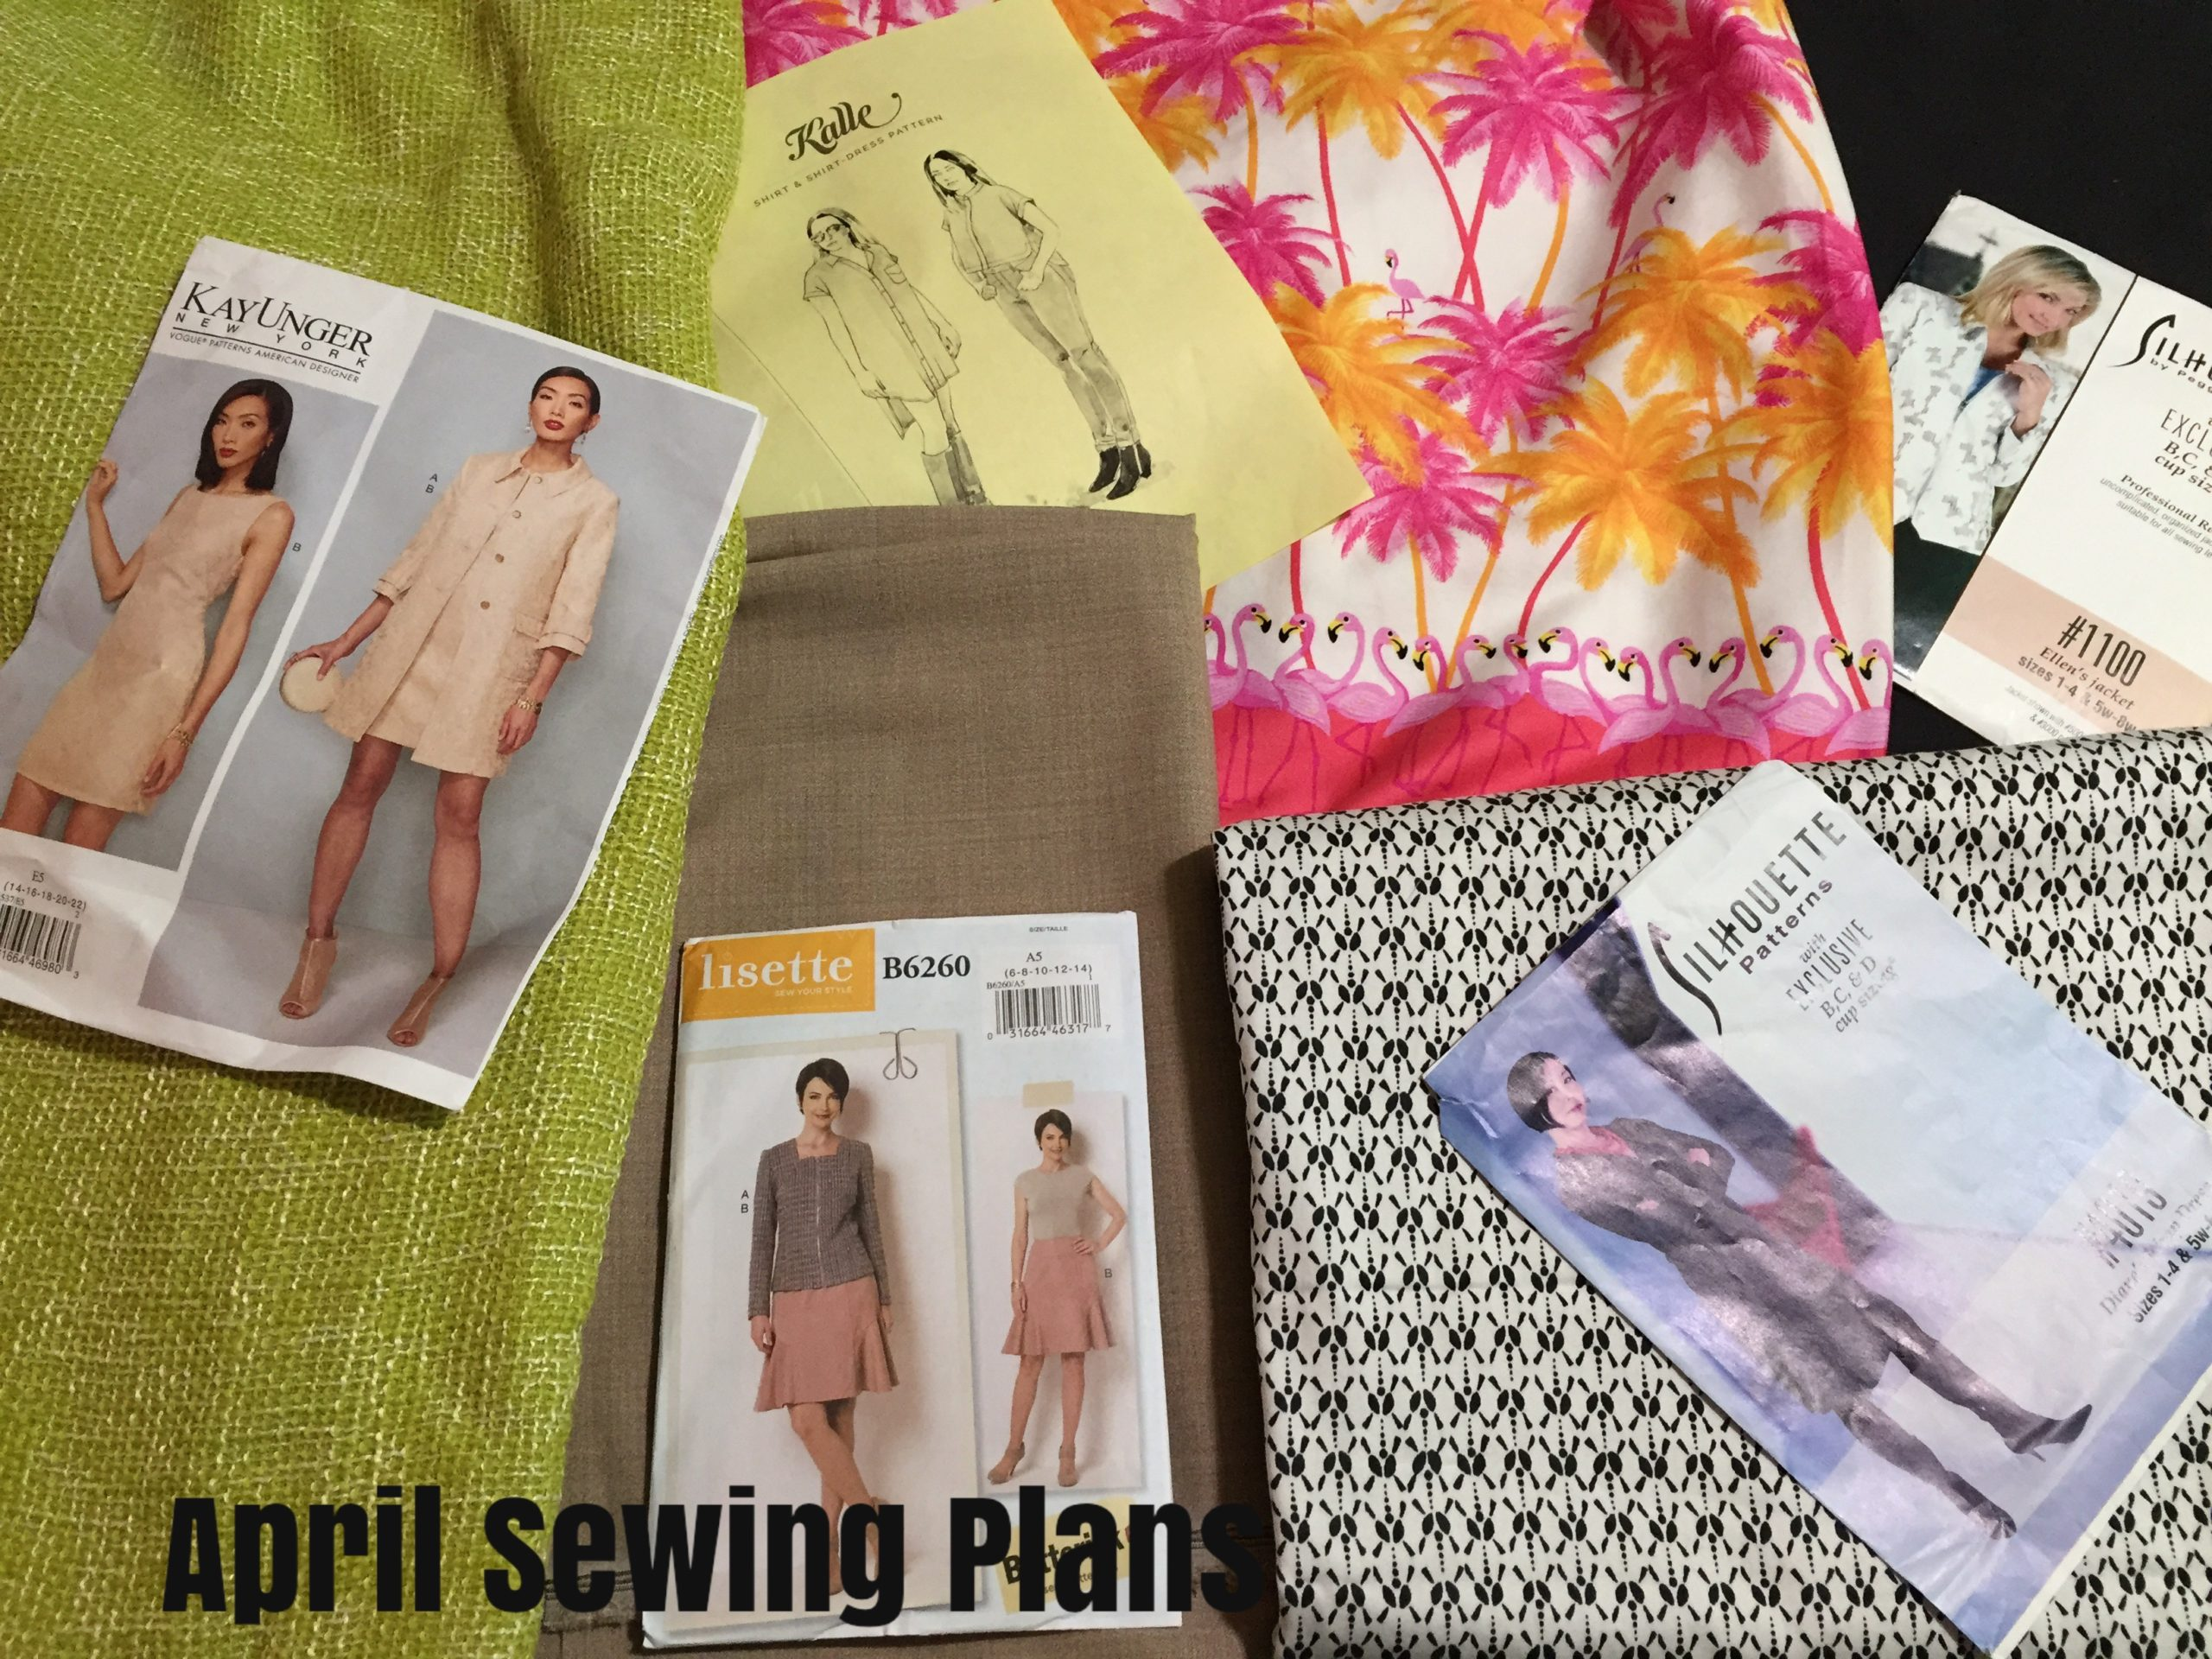 10 Tips for Garment Sewing Success